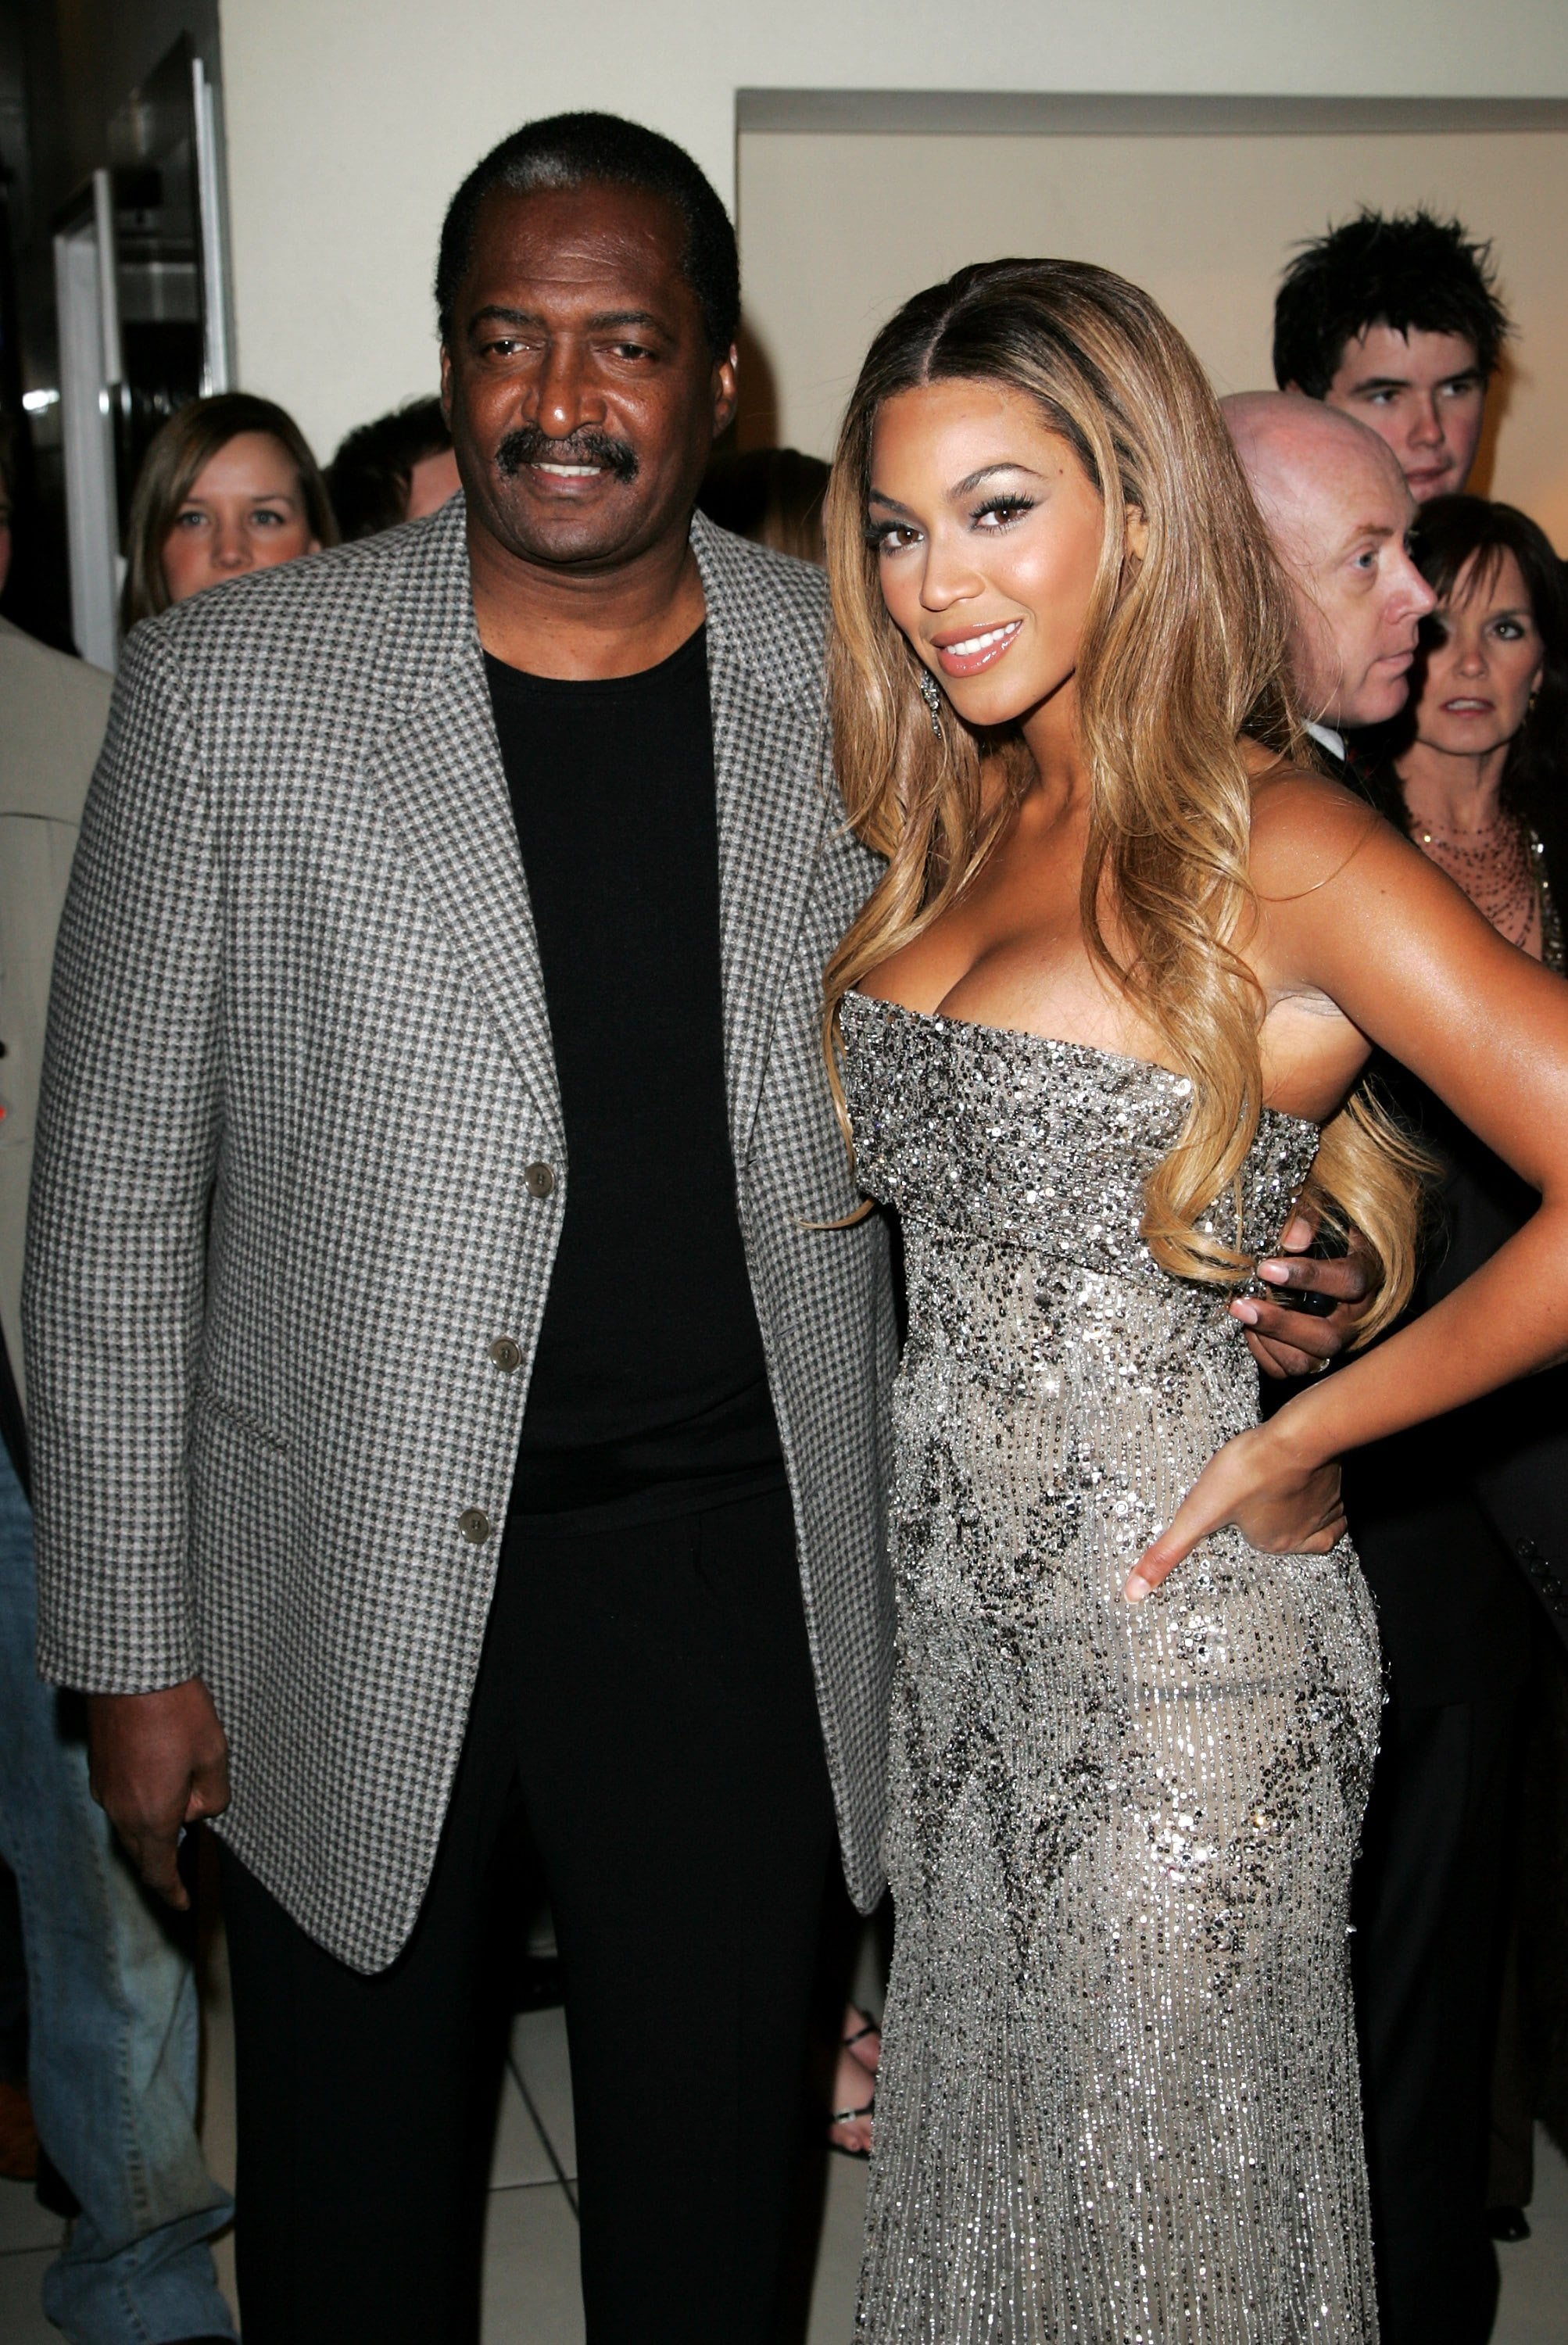 LONDON - JANUARY 21: Actress Beyonce Knowles and her father Matthew arrive at the UK premiere of